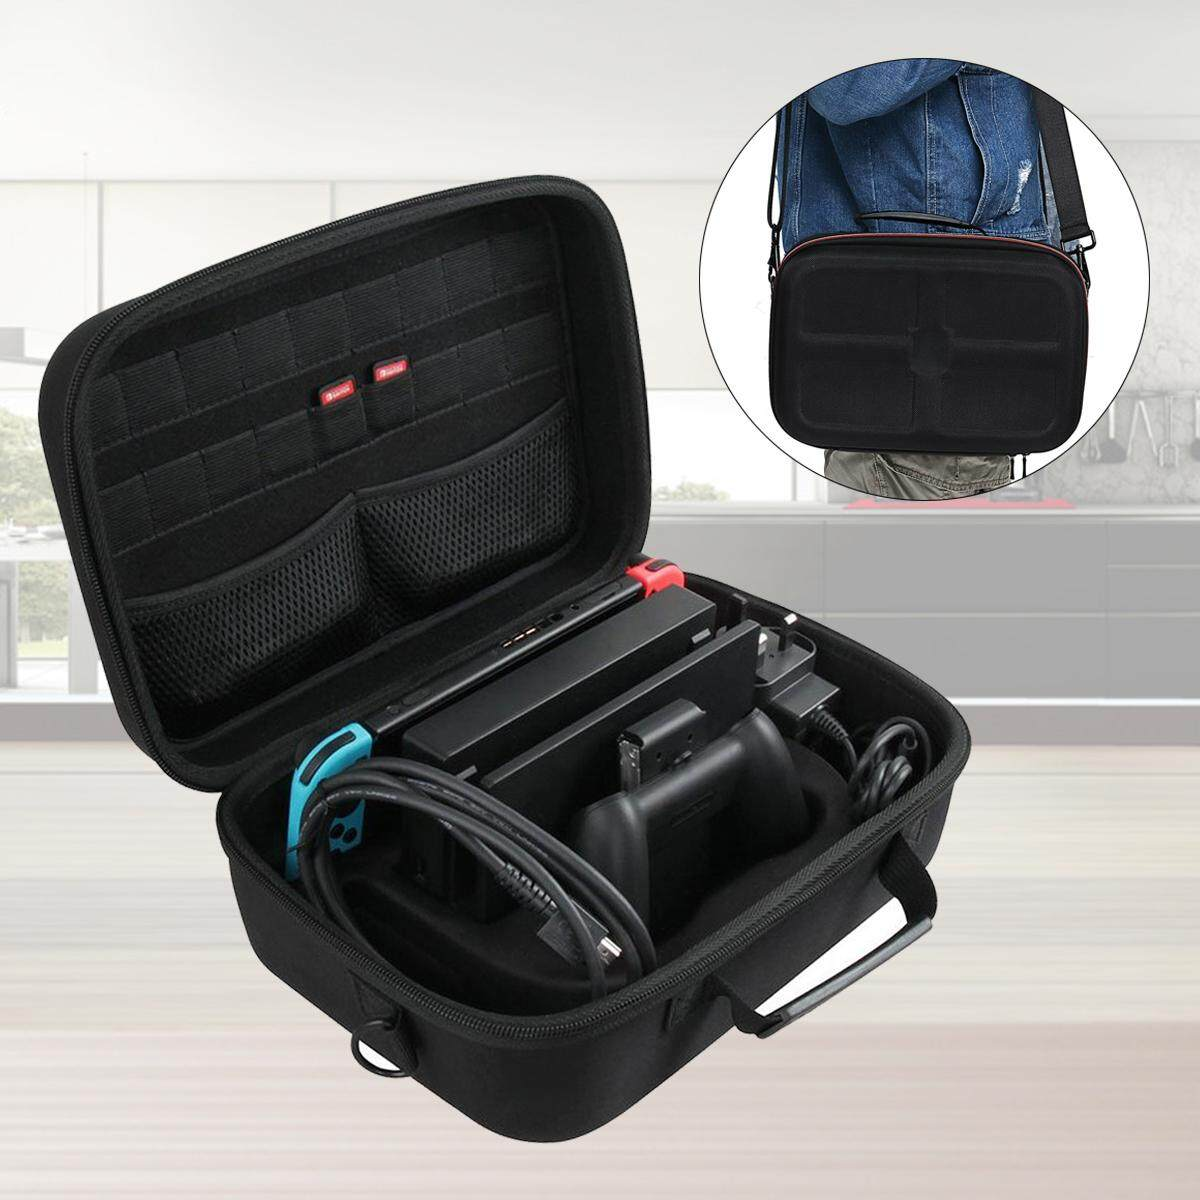 Coupon Hard Eva Carry All Travel Case For Nintendo Switch System By Hermitshell Intl